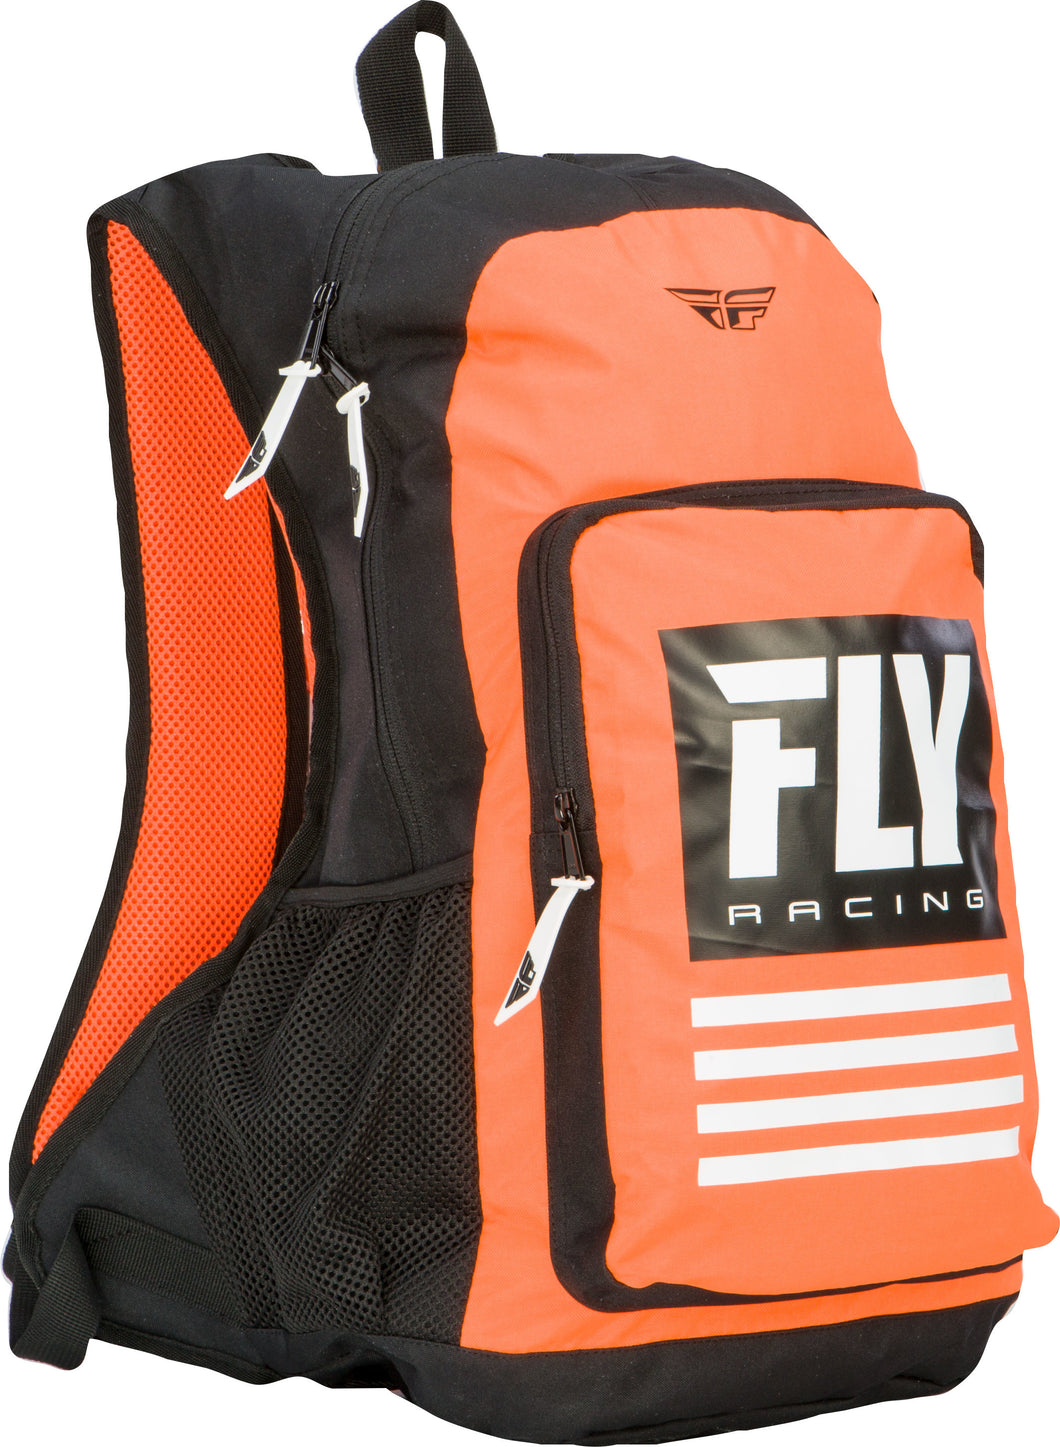 JUMP PACK BACKPACK ORANGE/BLACK